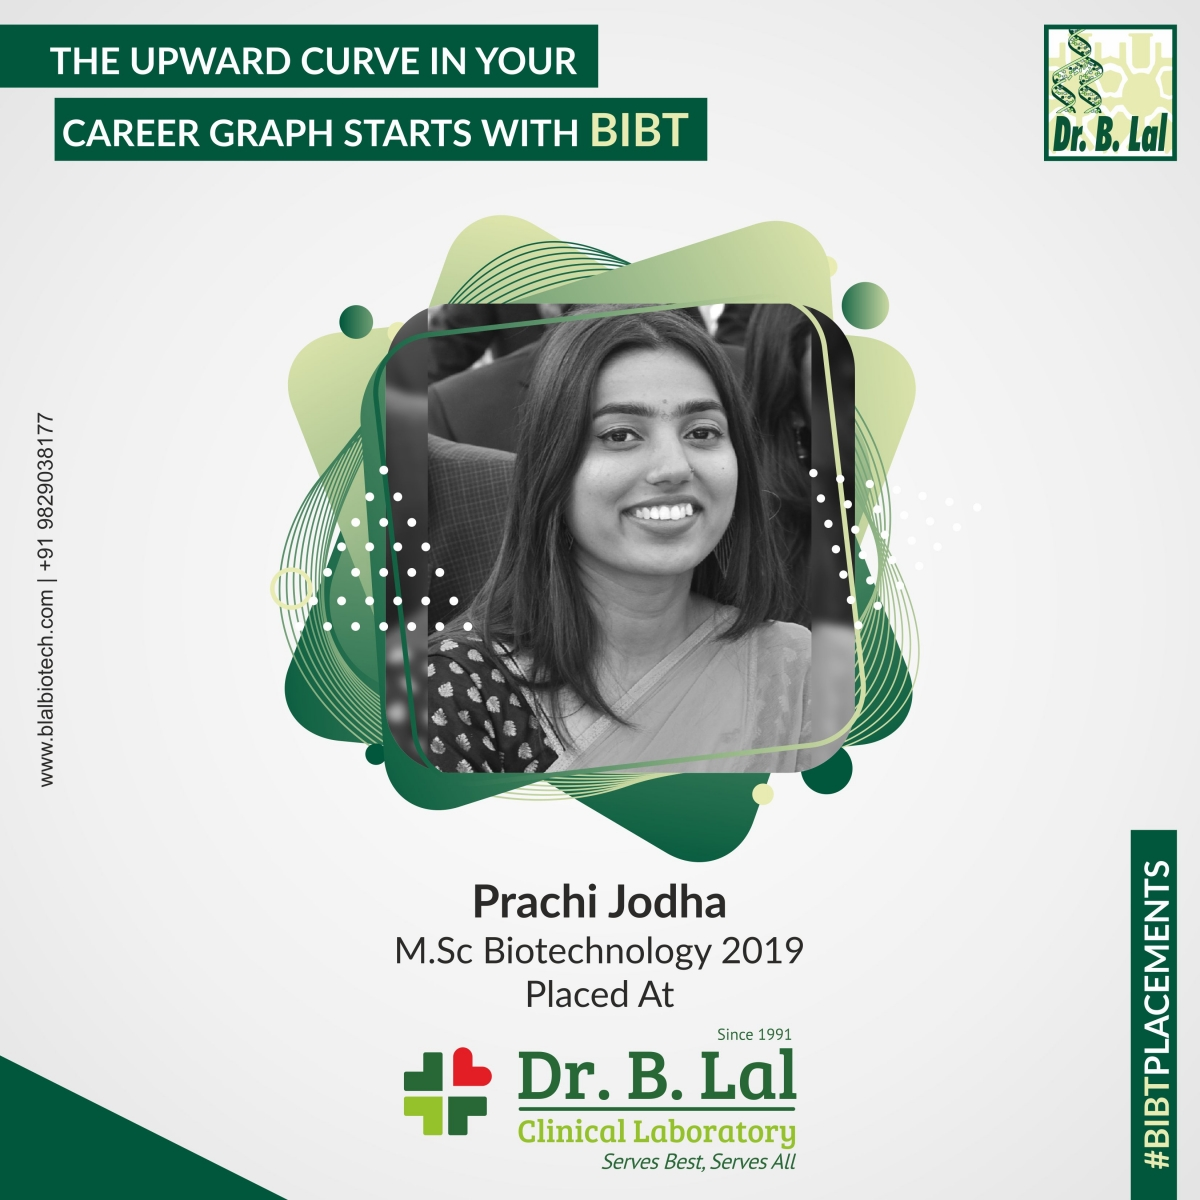 Prachi Jodha, M.Sc. Biotechnology 2019 | #BIBTPlacements